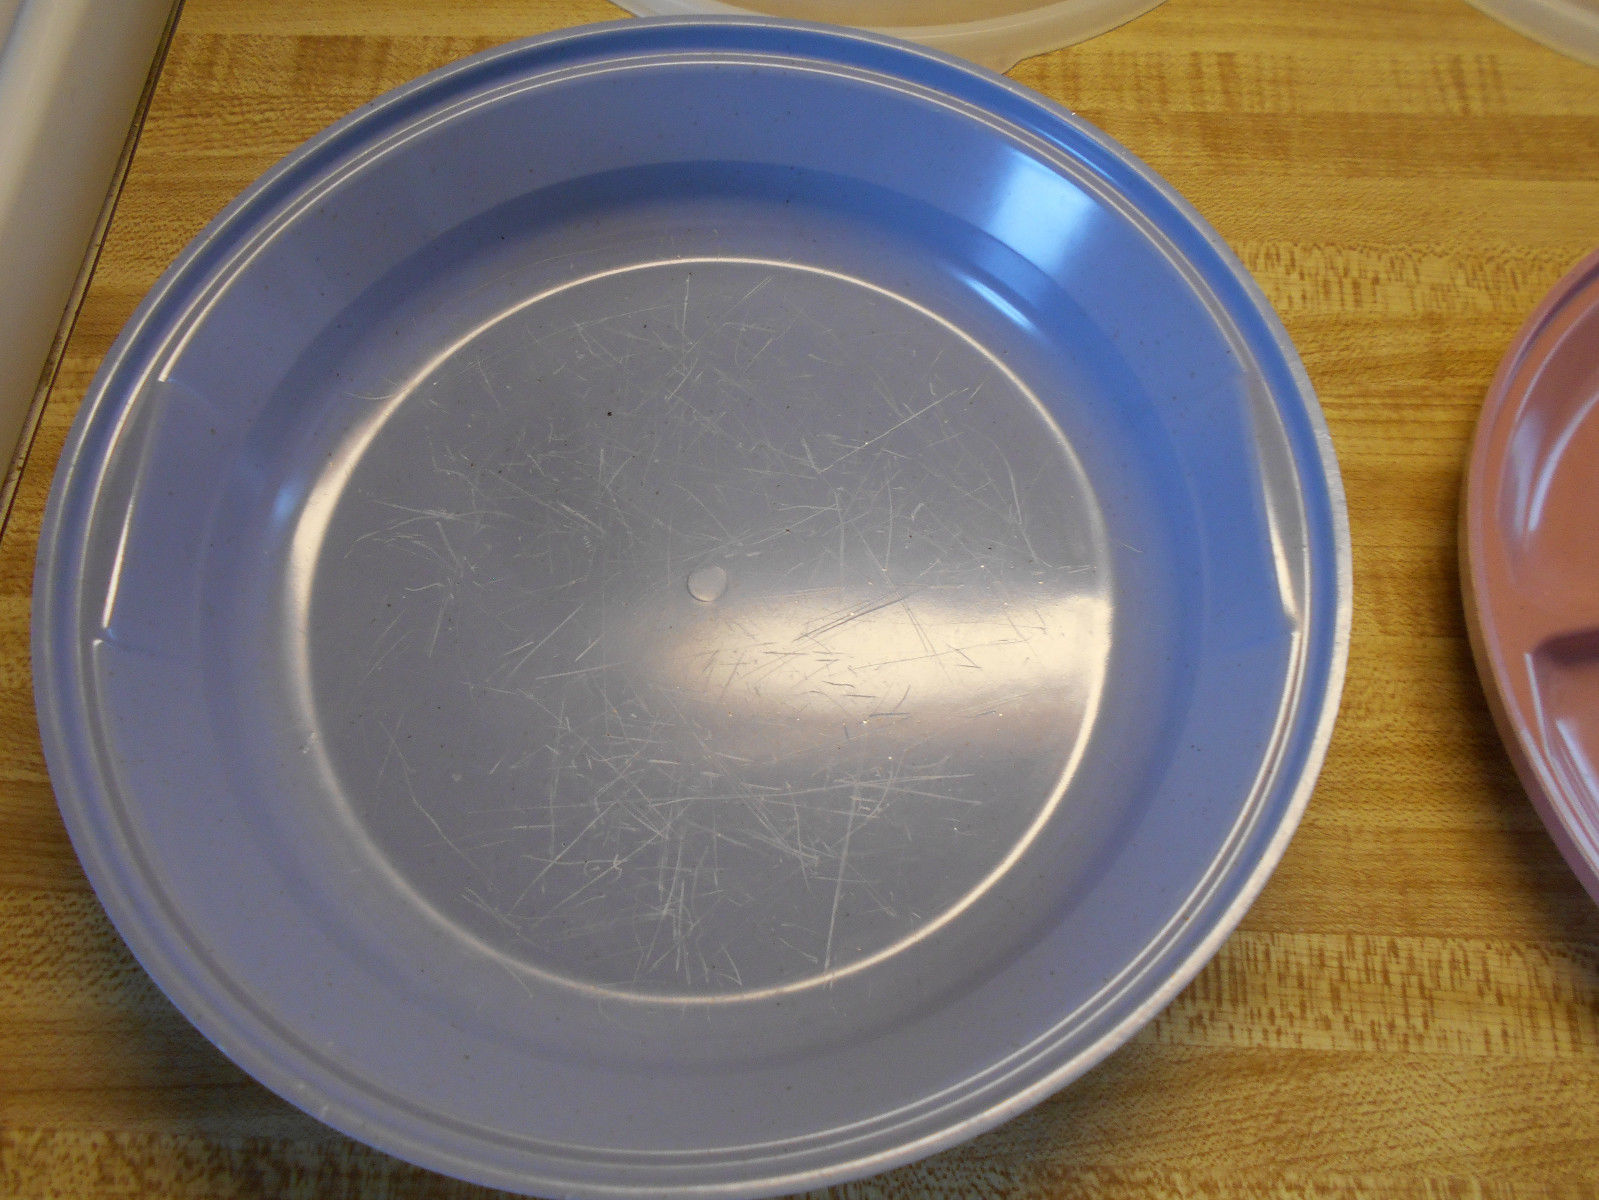 ... rubbermaid plates with covers ... & rubbermaid plates with covers and similar items